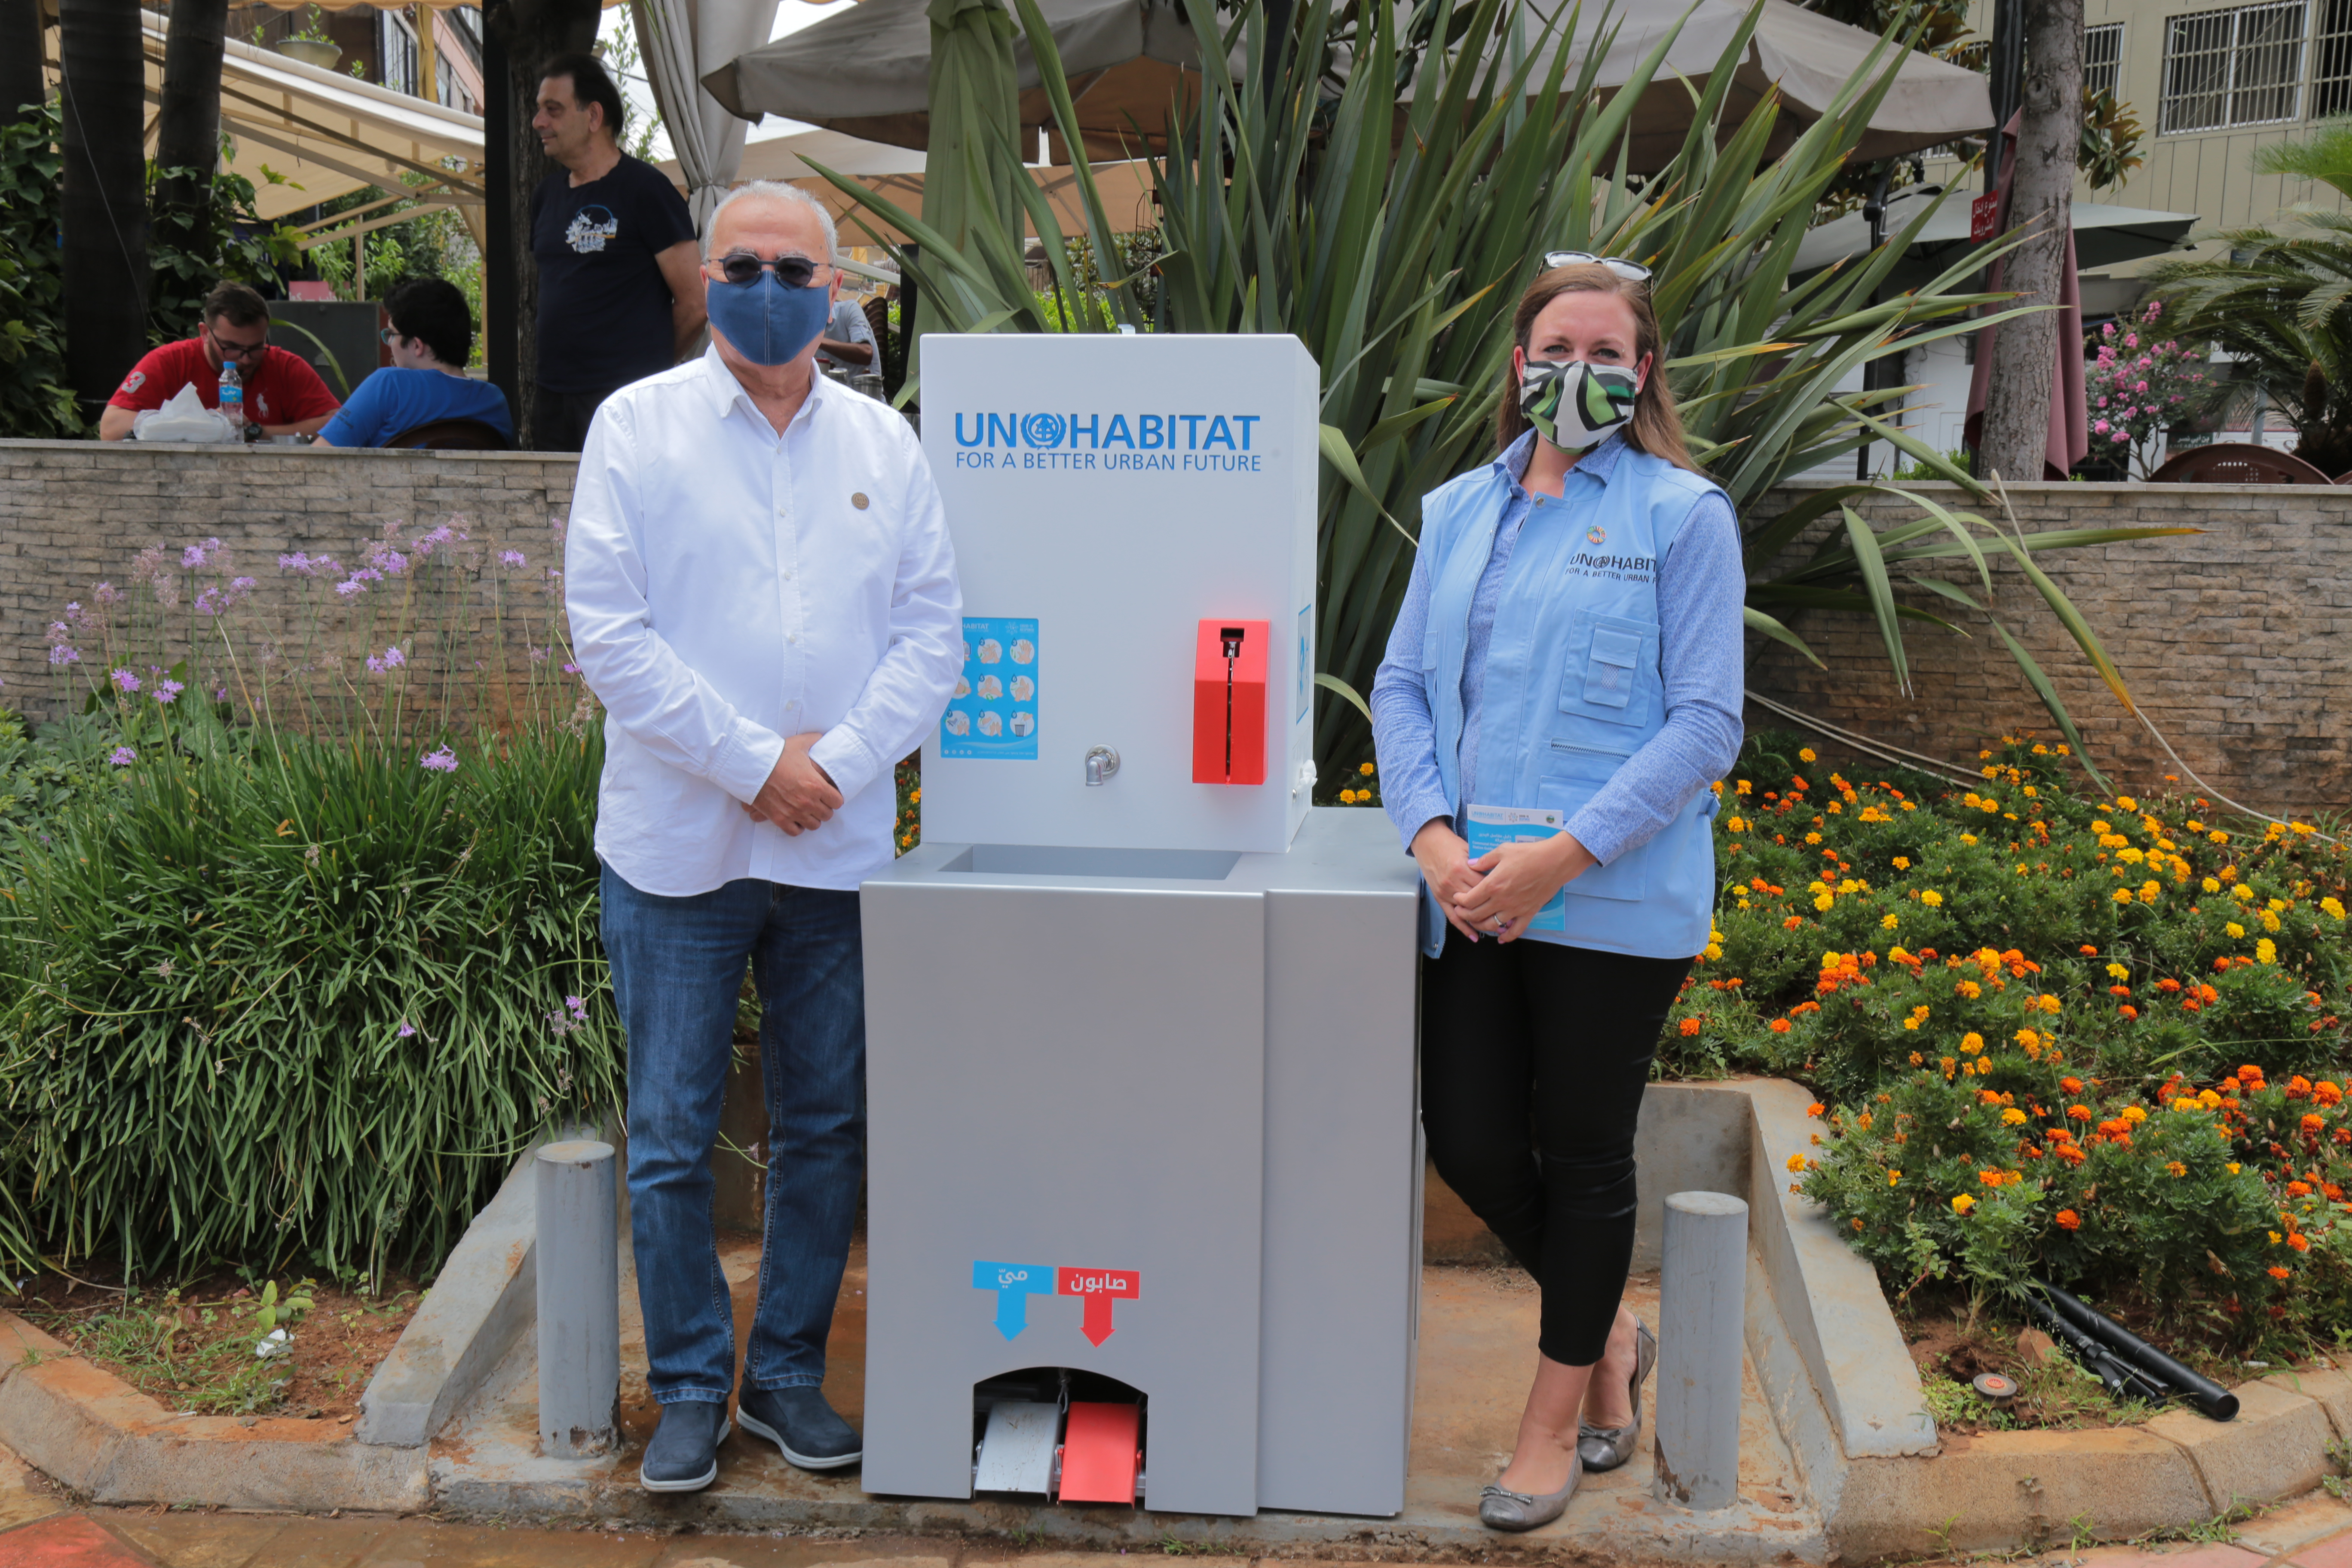 The inauguration of the first communal handwashing stations in Lebanon to prevent the spread of COVID-19 and other illnesses with the Mayor of Bourj Hammoud, Mount Lebanon Mardig Boghossian and the head of UN-Habitat Lebanon Country Programme Taina Christiansen